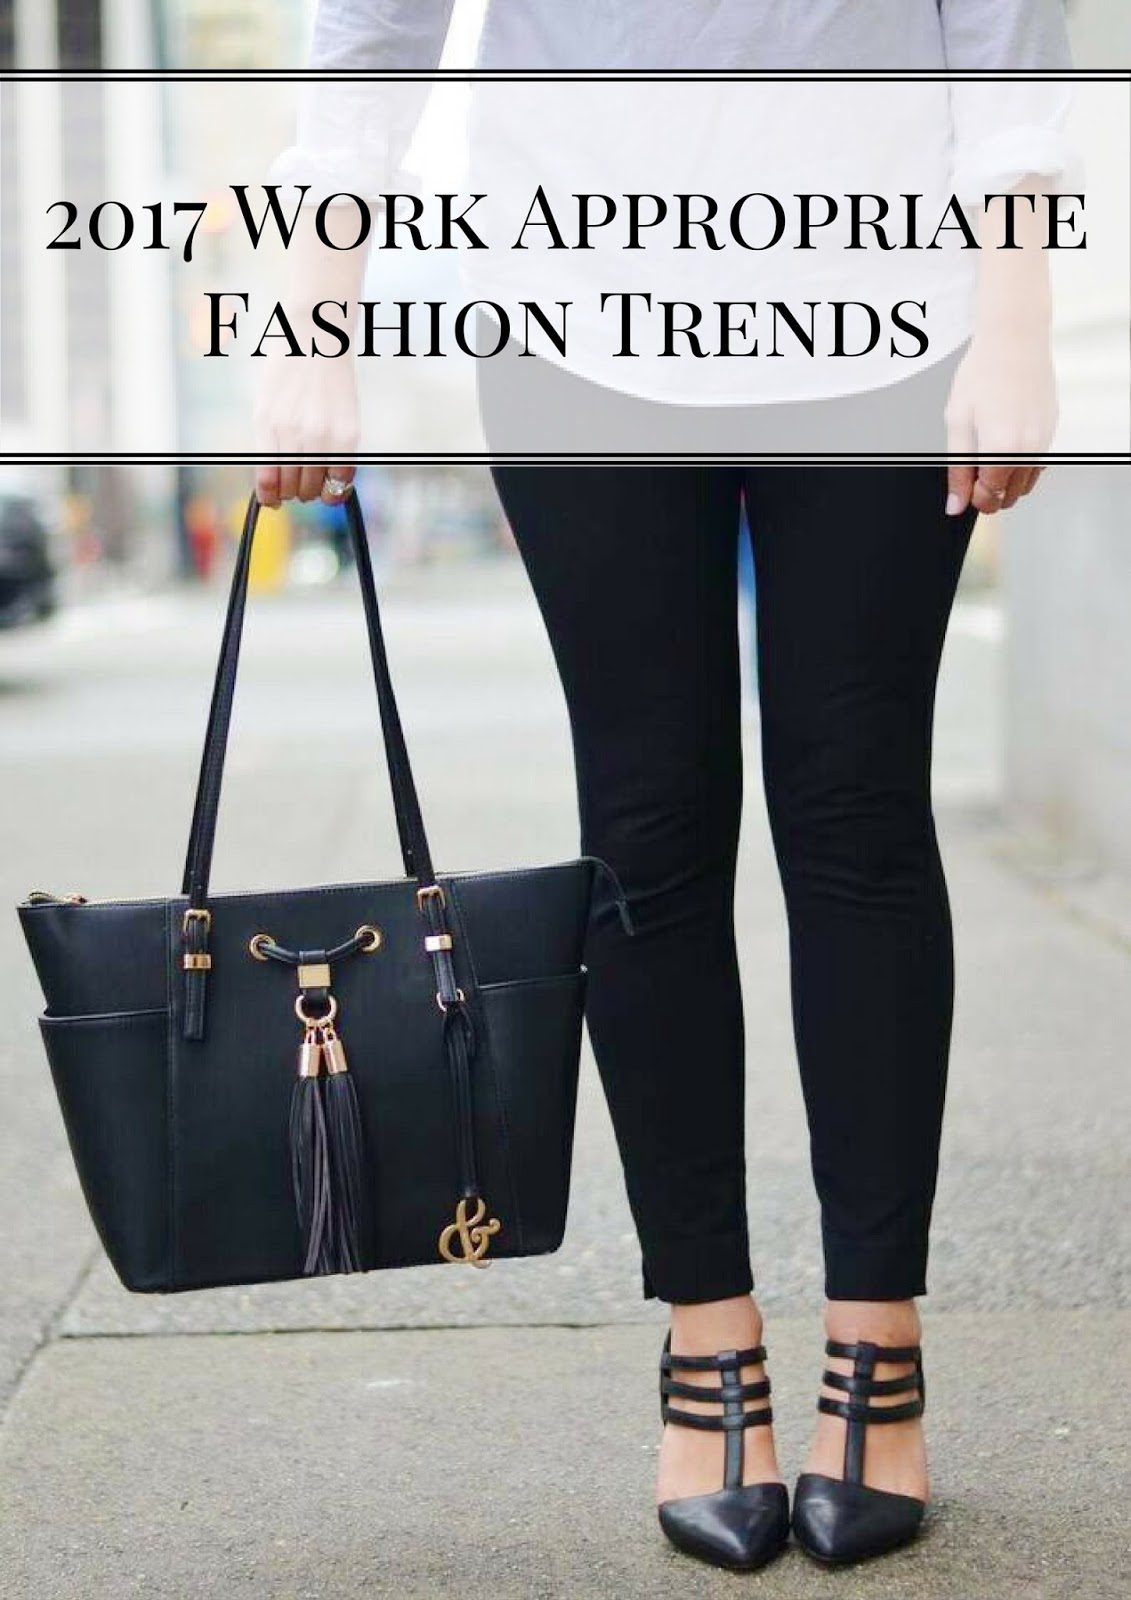 wearble fashion trends 2017